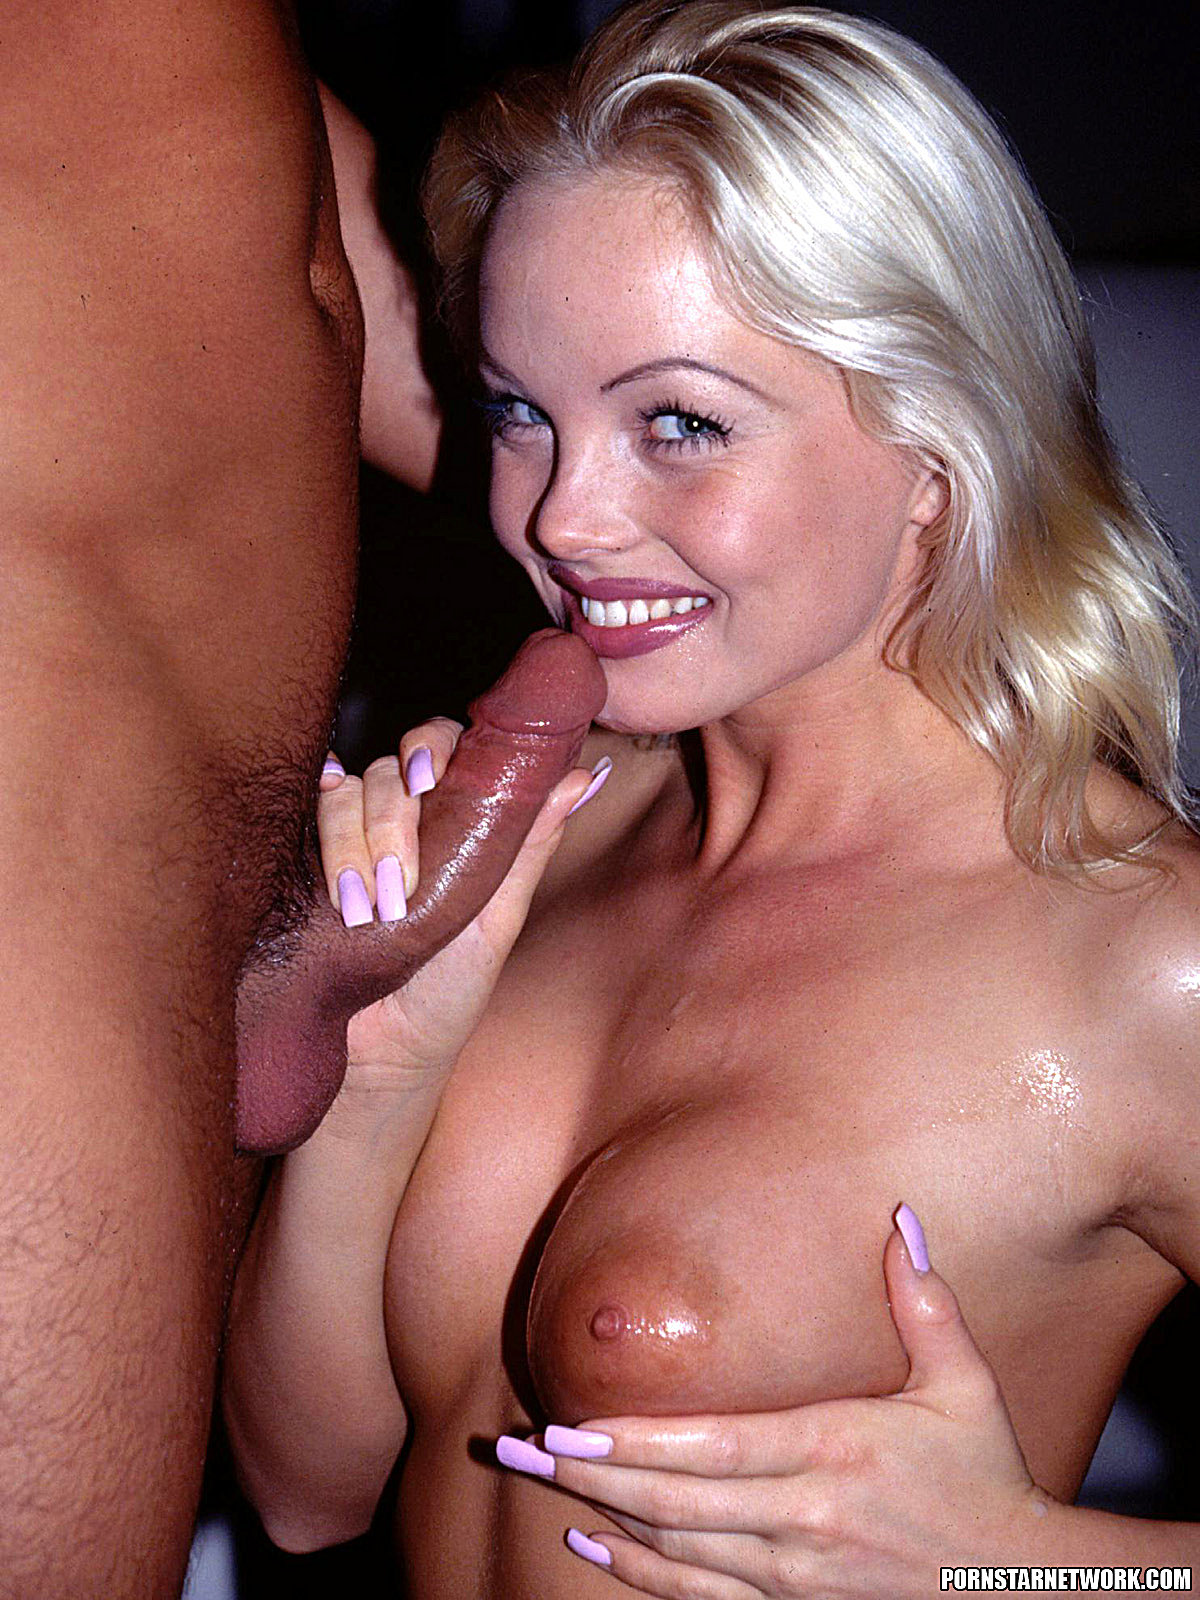 Blonde love cock in her beautyful ass troia italian bello duro per bene in fondo al culo e spac - 2 part 2